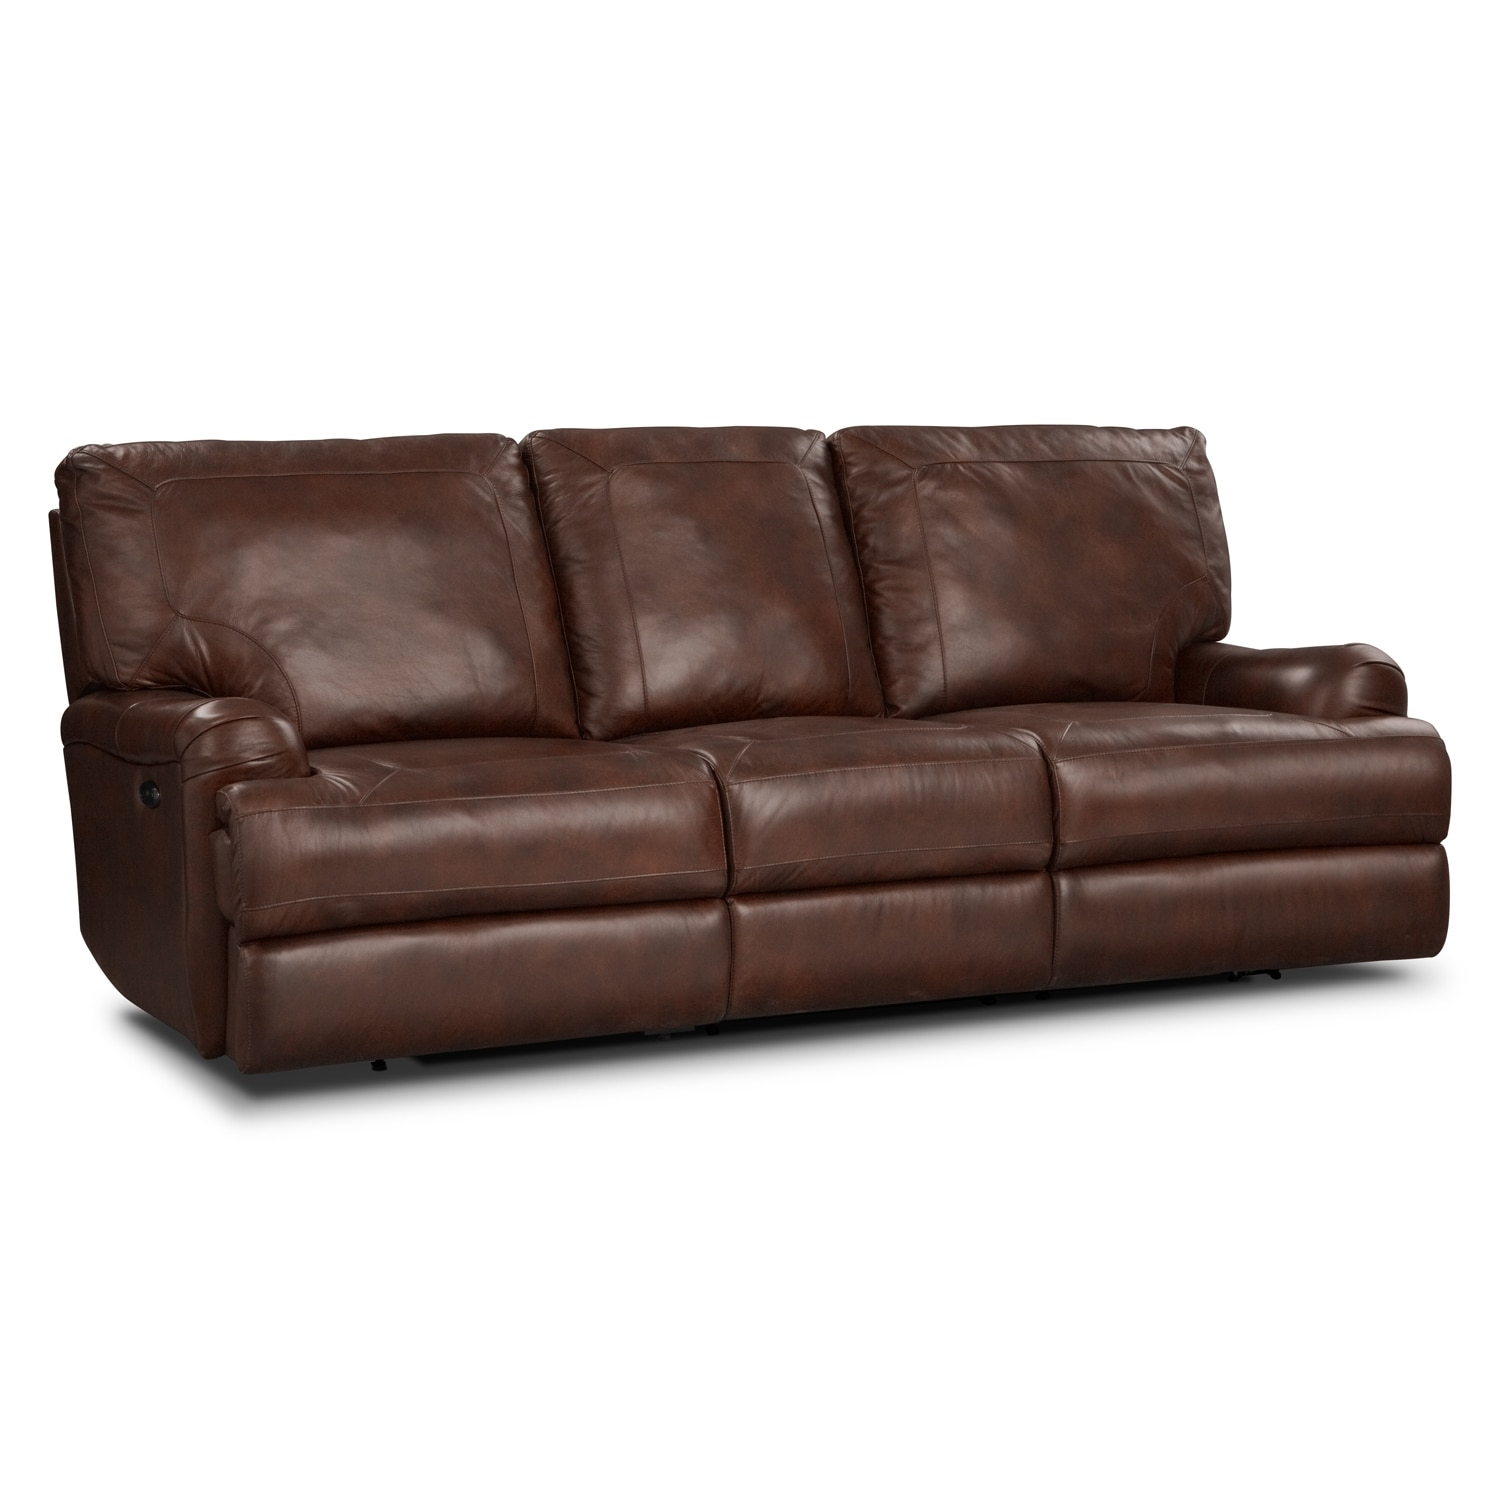 Kingsway Power Reclining Sofa - Brown | Value City Furniture